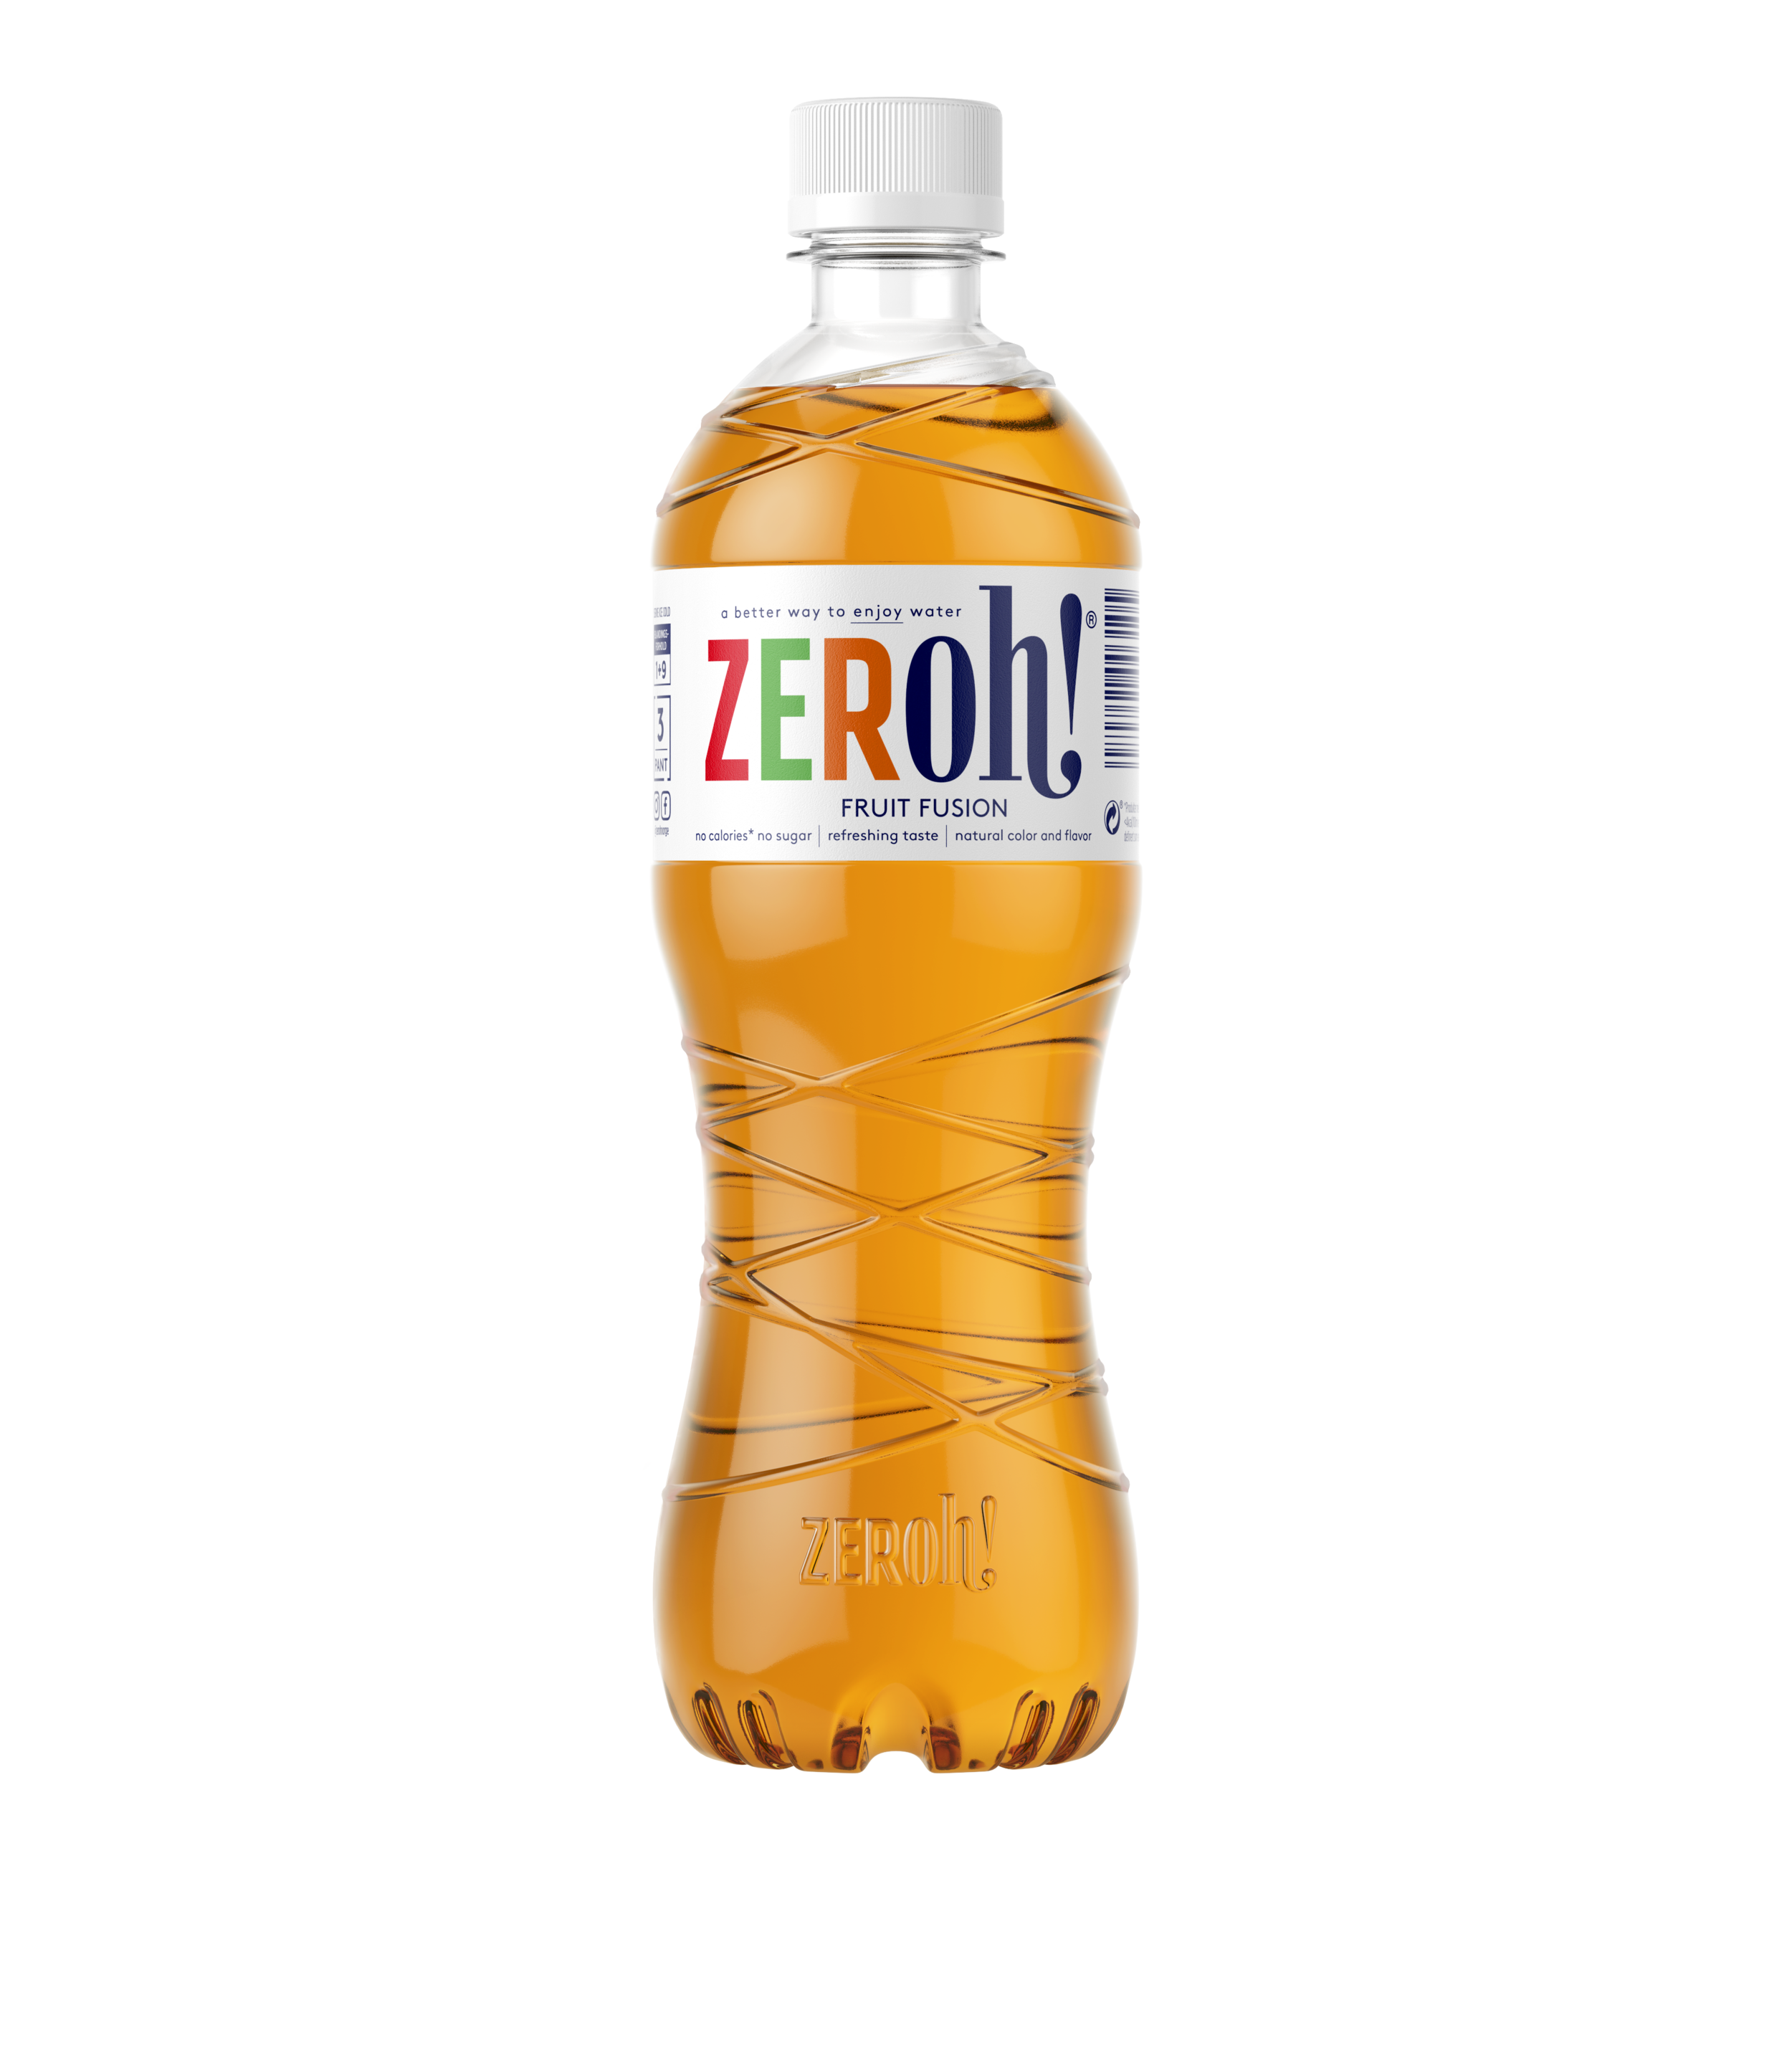 ZERoh! Fruit Fusion 2019 3D transparent.png